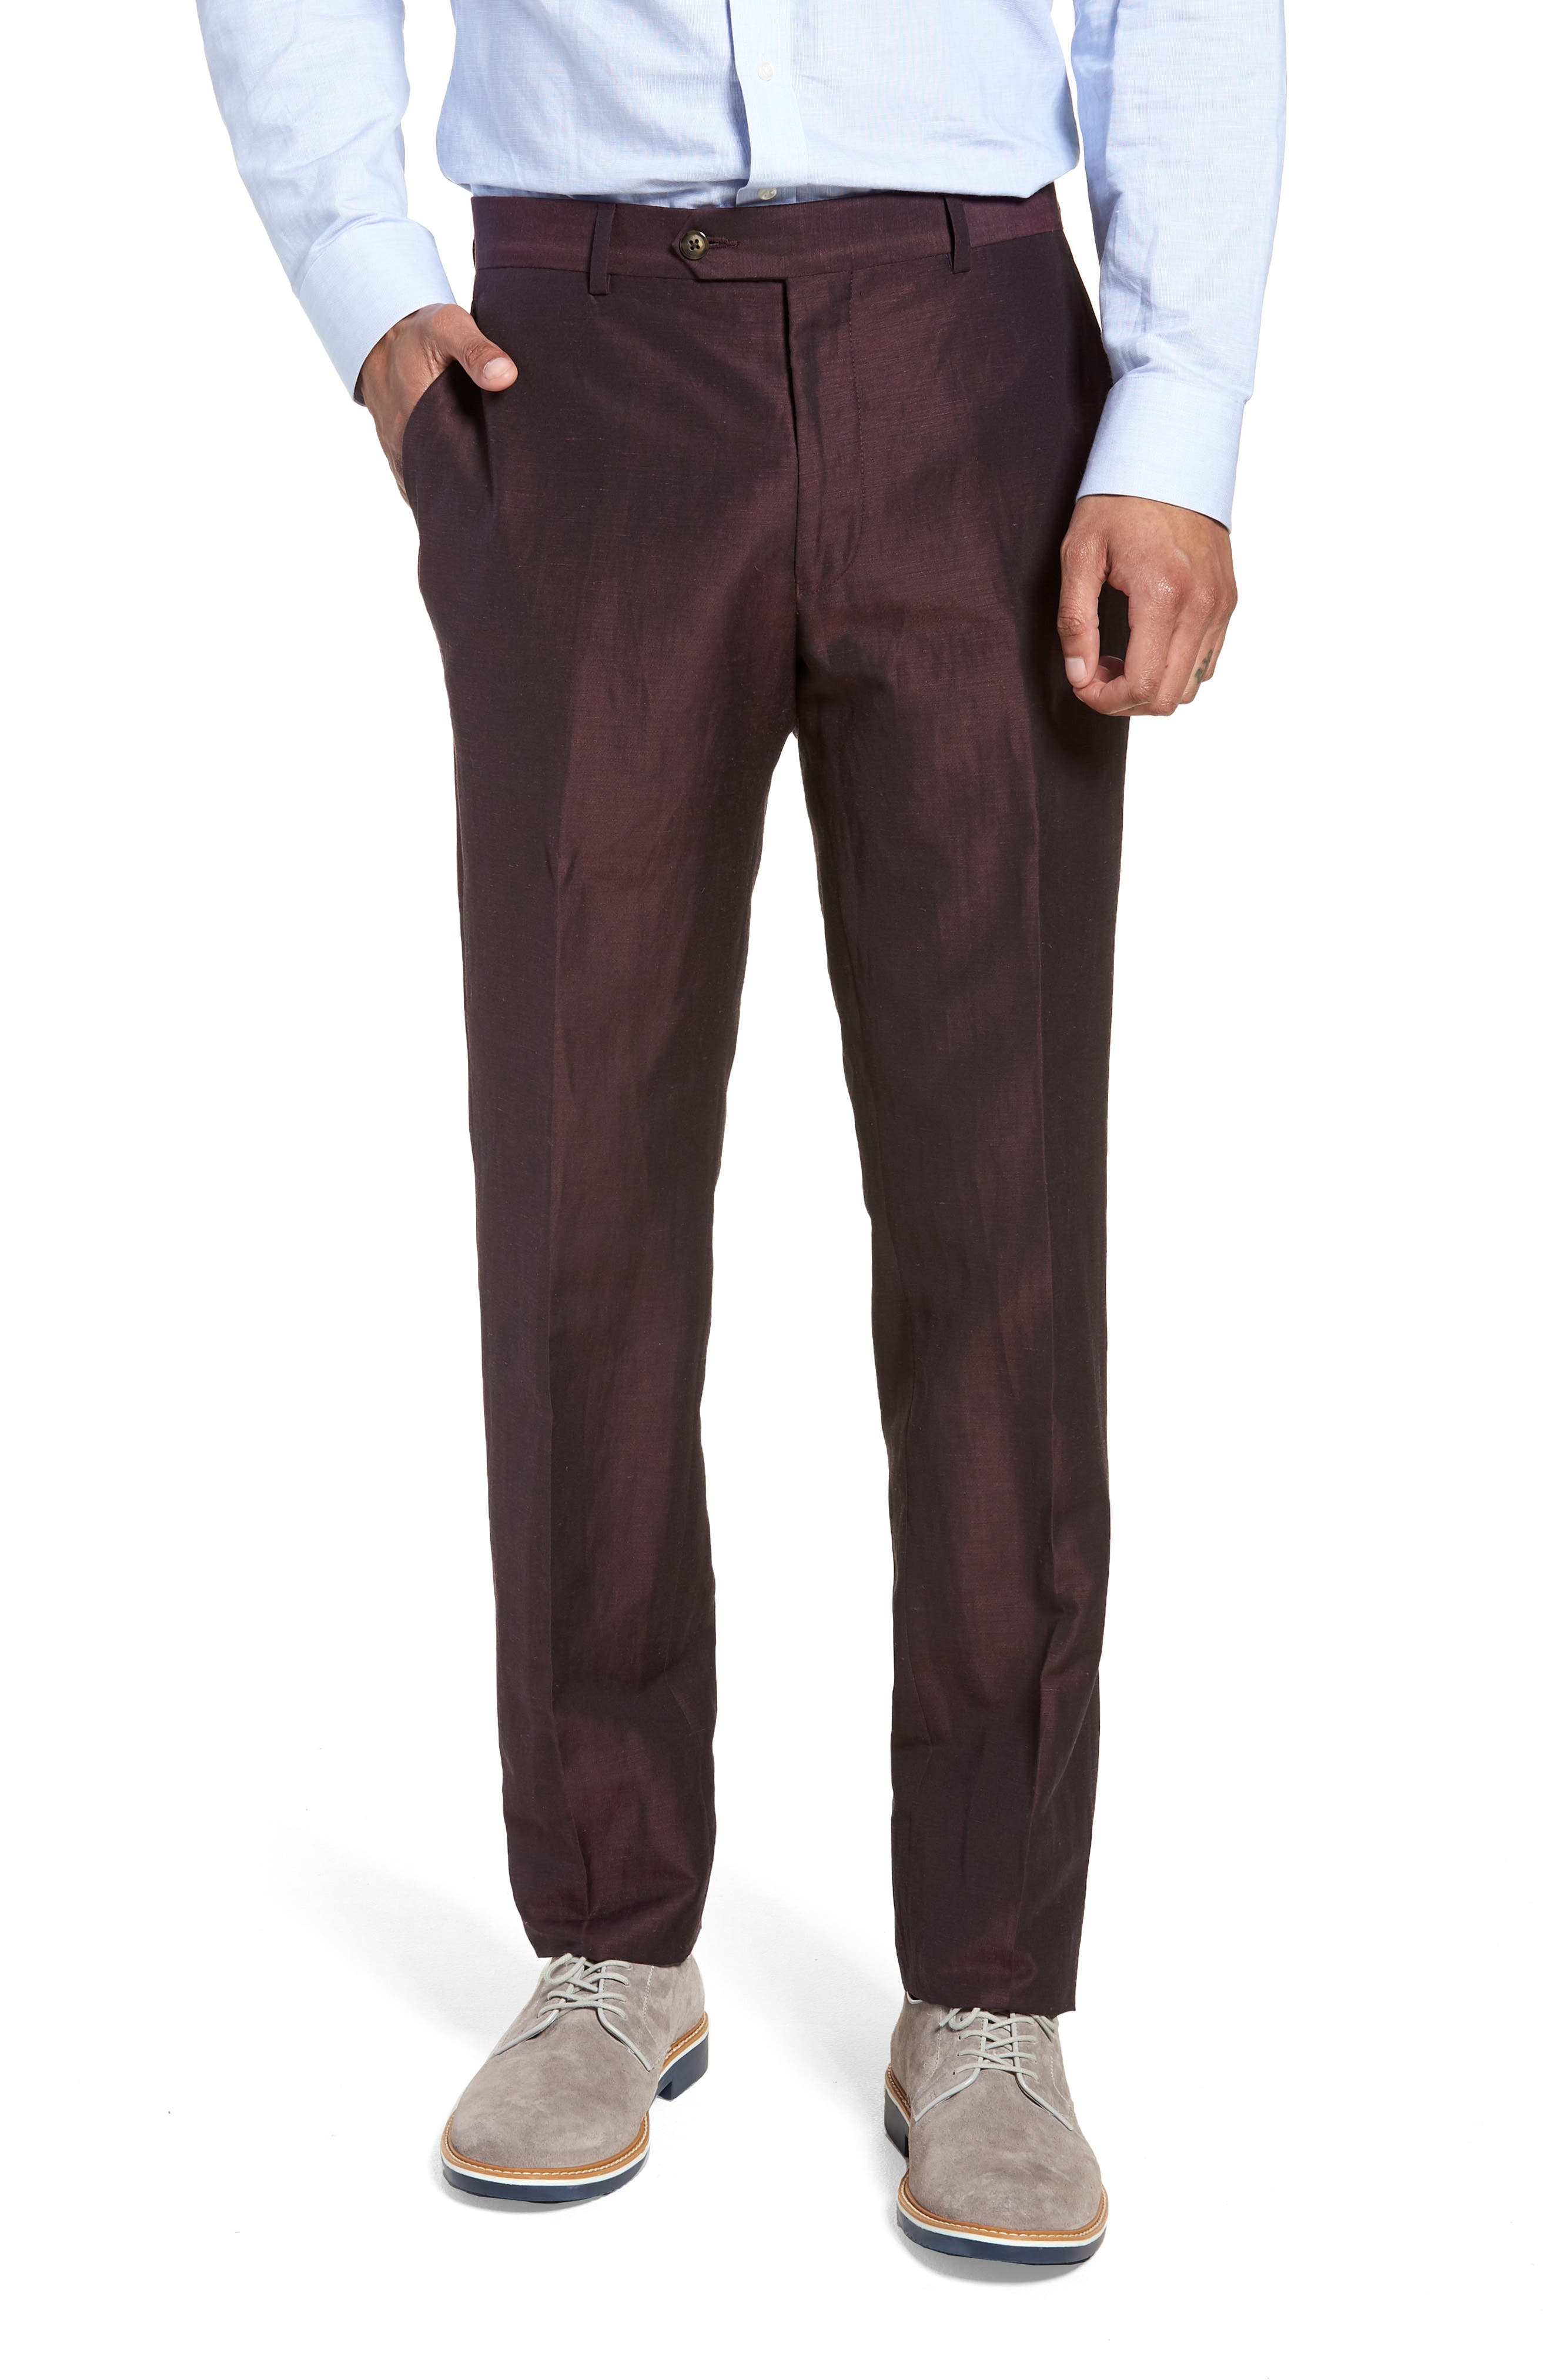 Dagger Flat Front Solid Wool & Linen Trousers,                             Main thumbnail 1, color,                             500